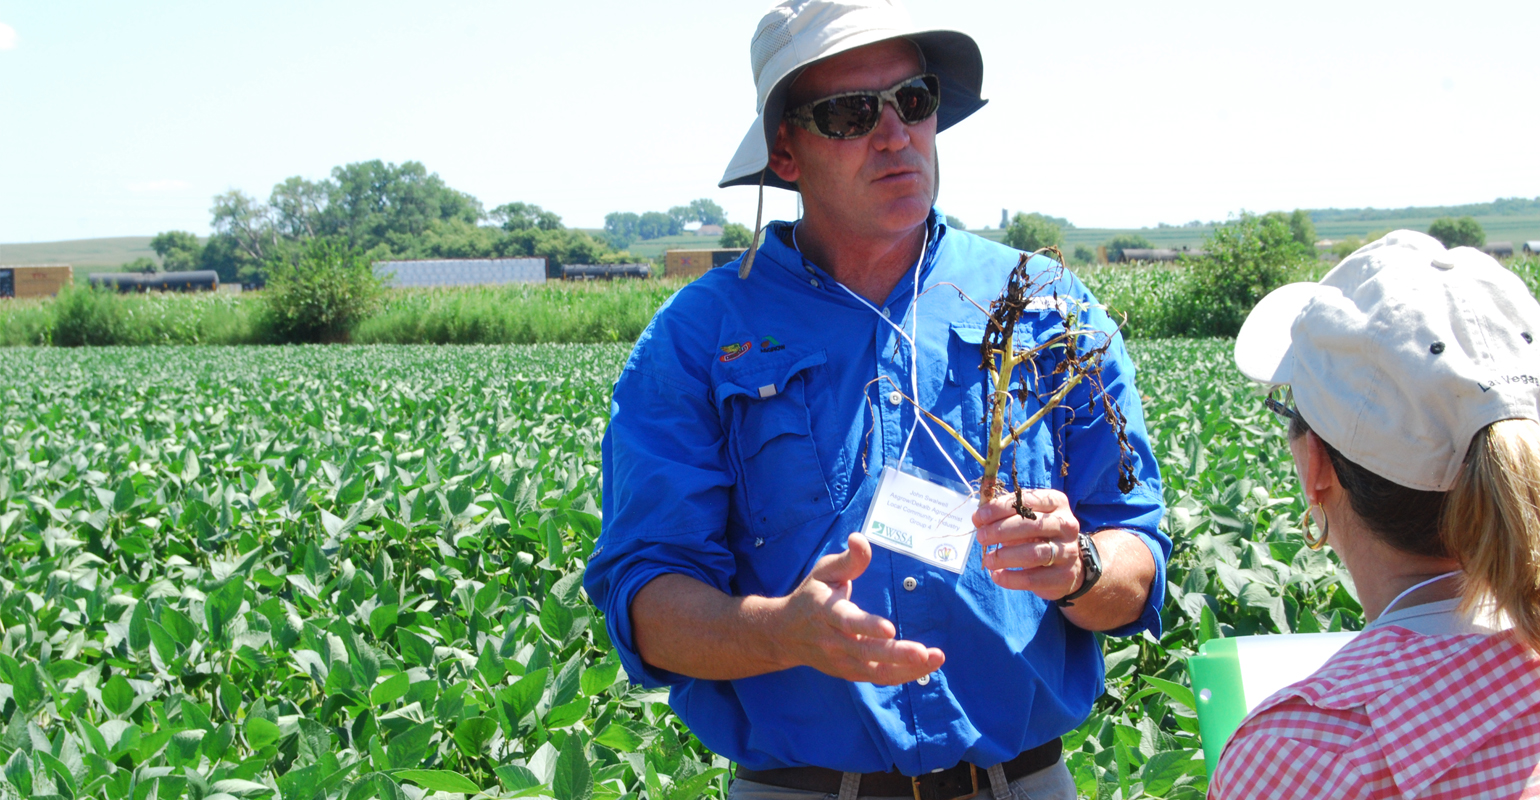 : John Swalwell, agronomist with Asgrow/Dekalb on the Harrison County pest resistance project team, was one of the team members who answered questions at last summer's plot tour